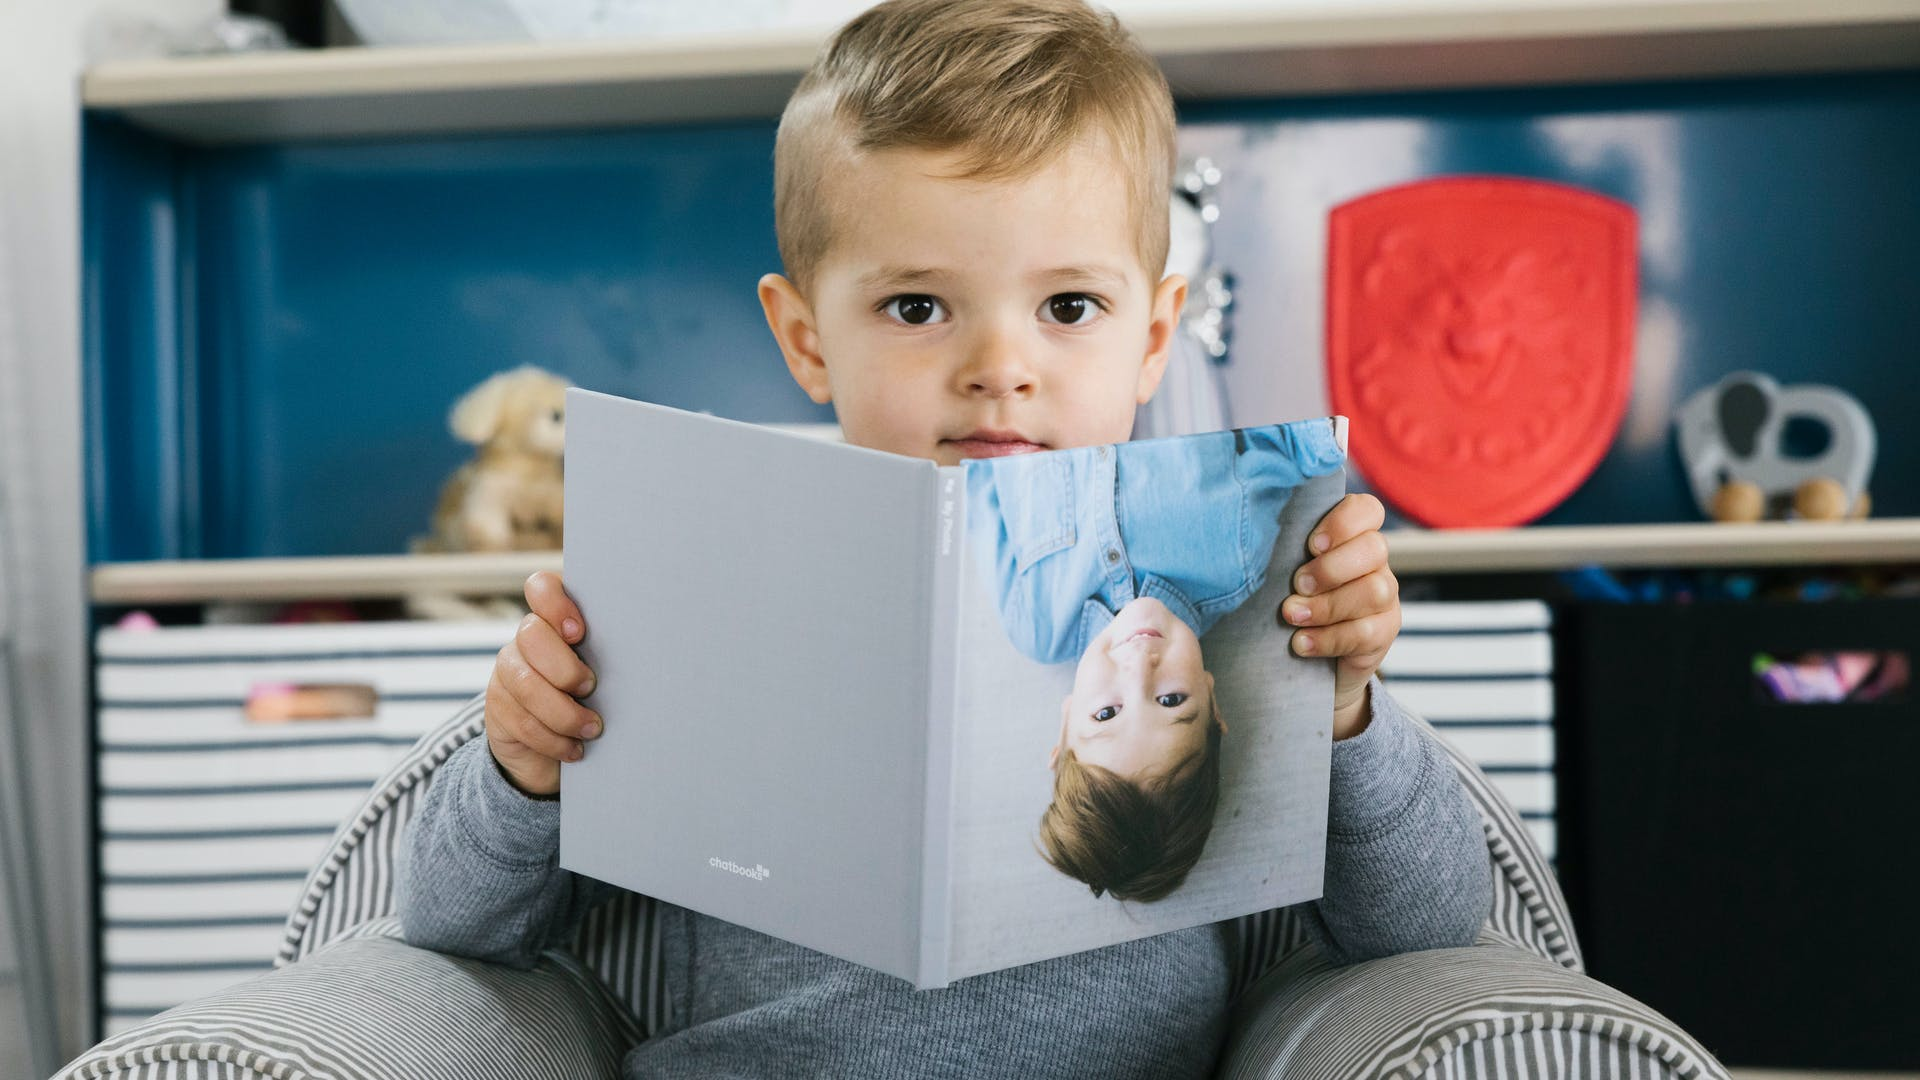 Boy with Chatbooks photo book